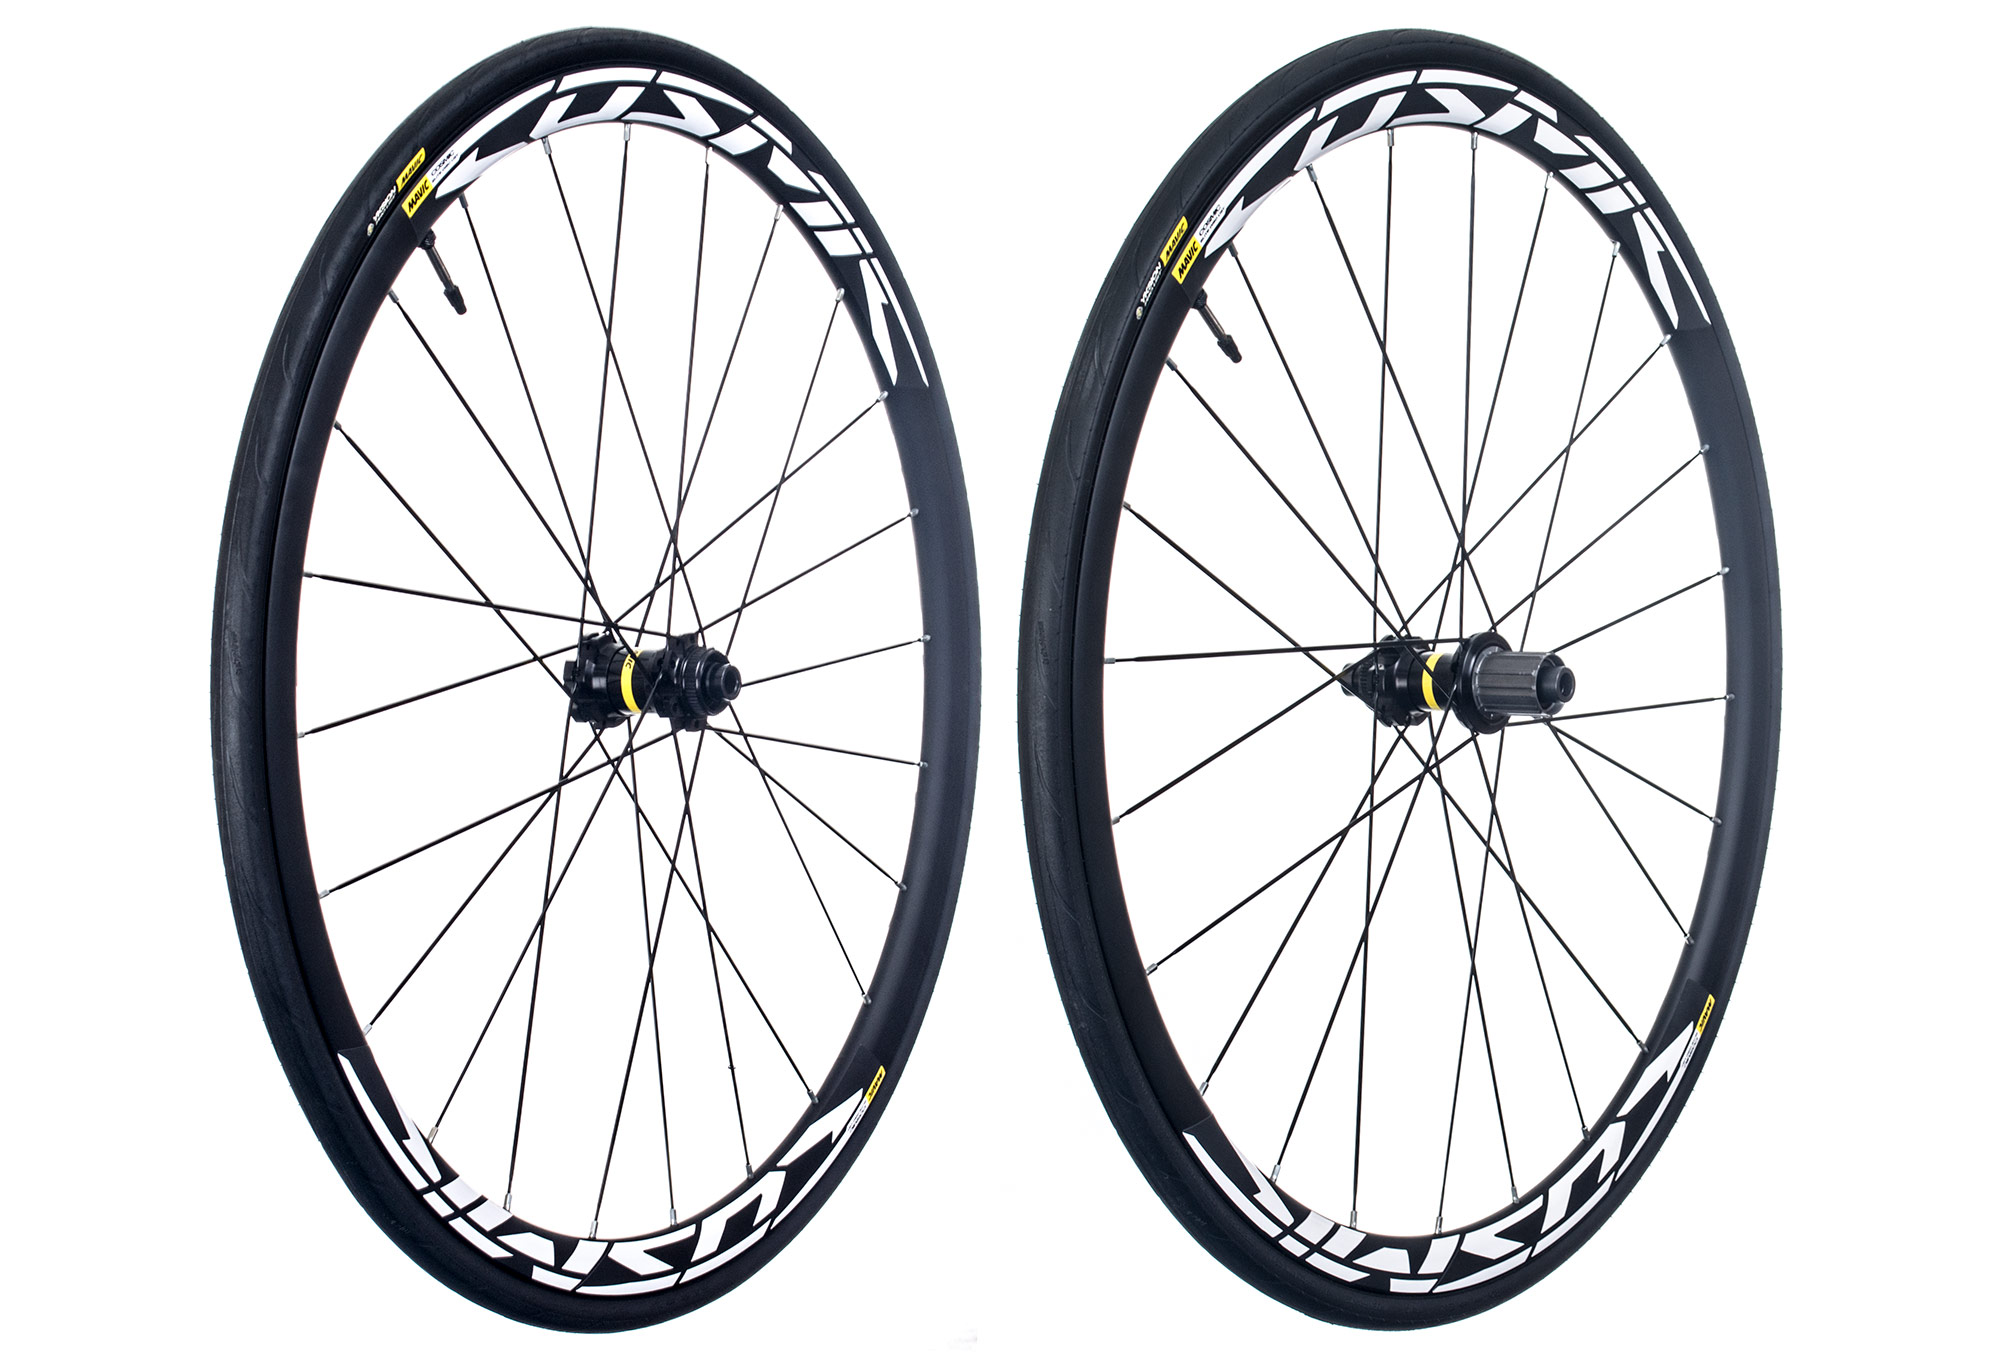 2018 shoes low price detailed pictures Wheelset MAVIC Cosmic Elite UST Disc Center Lock 12x100/142mm |  Shimano/Sram | Yksion Pro UST 25mm